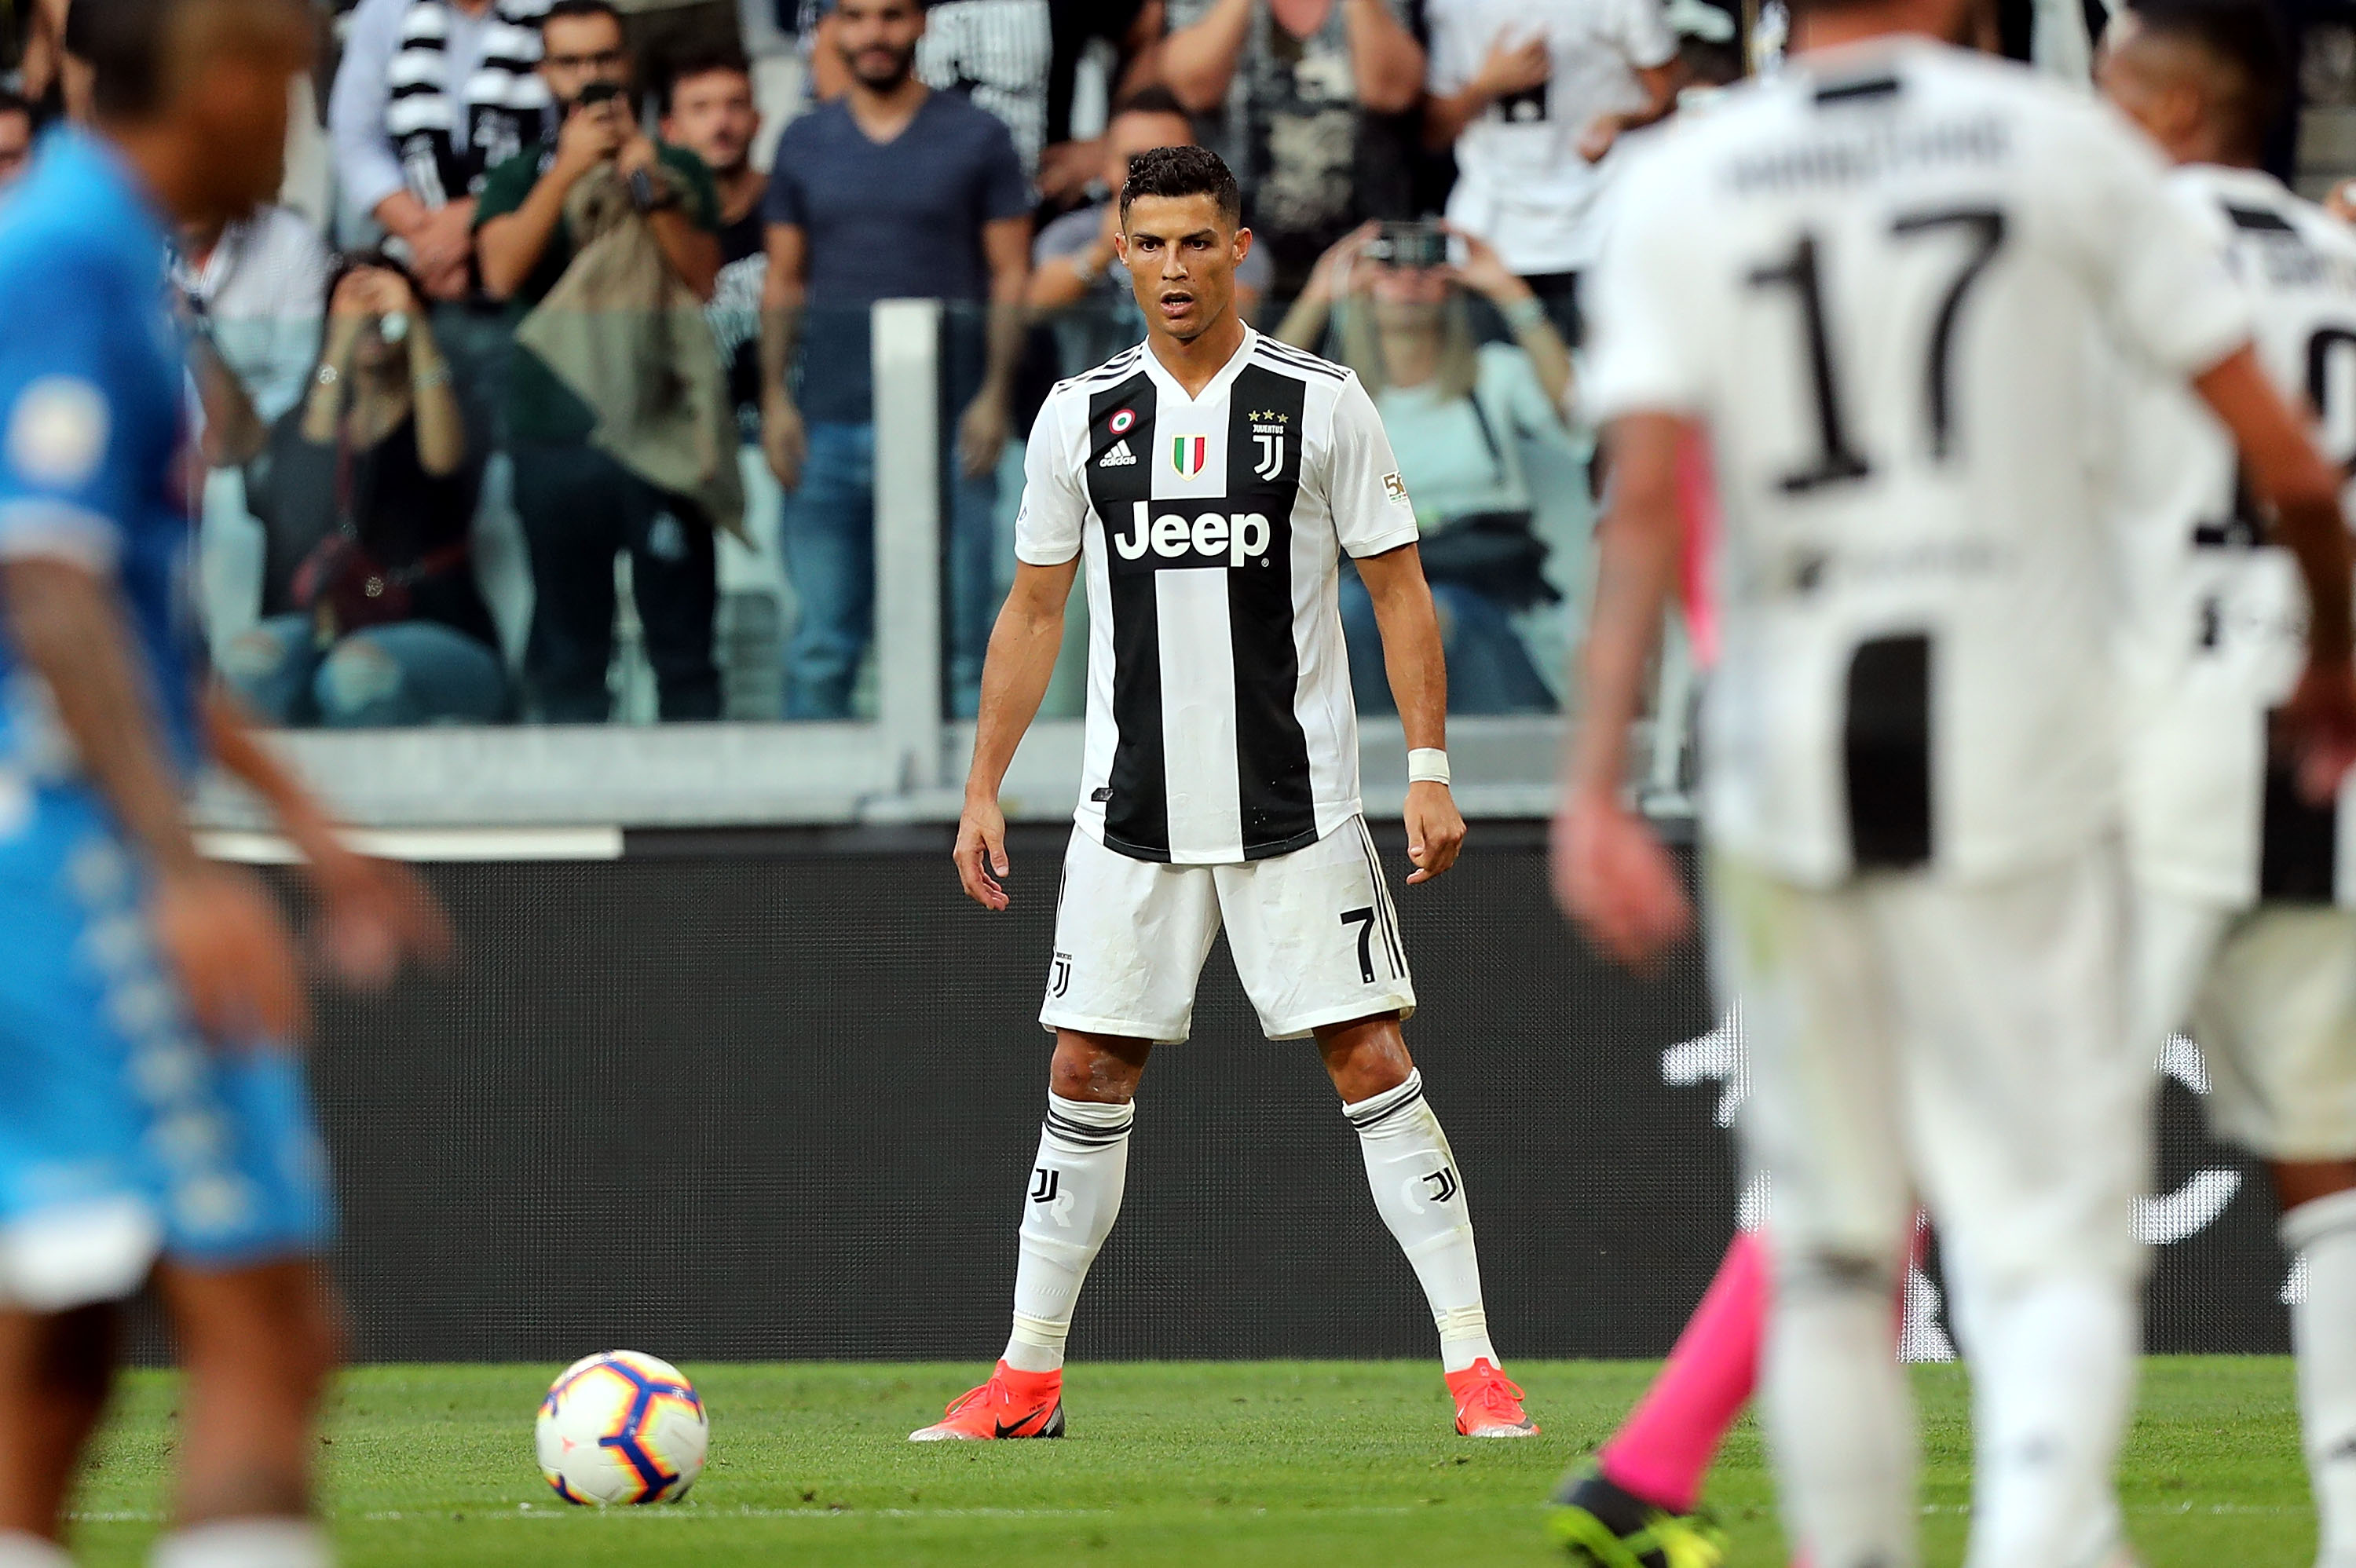 aa442ac7a01c0 It was almost as if Real president Florentino Perez had been anticipating  such a reaction from the Bernabeu as he tried to assure supporters that  Ronaldo ...